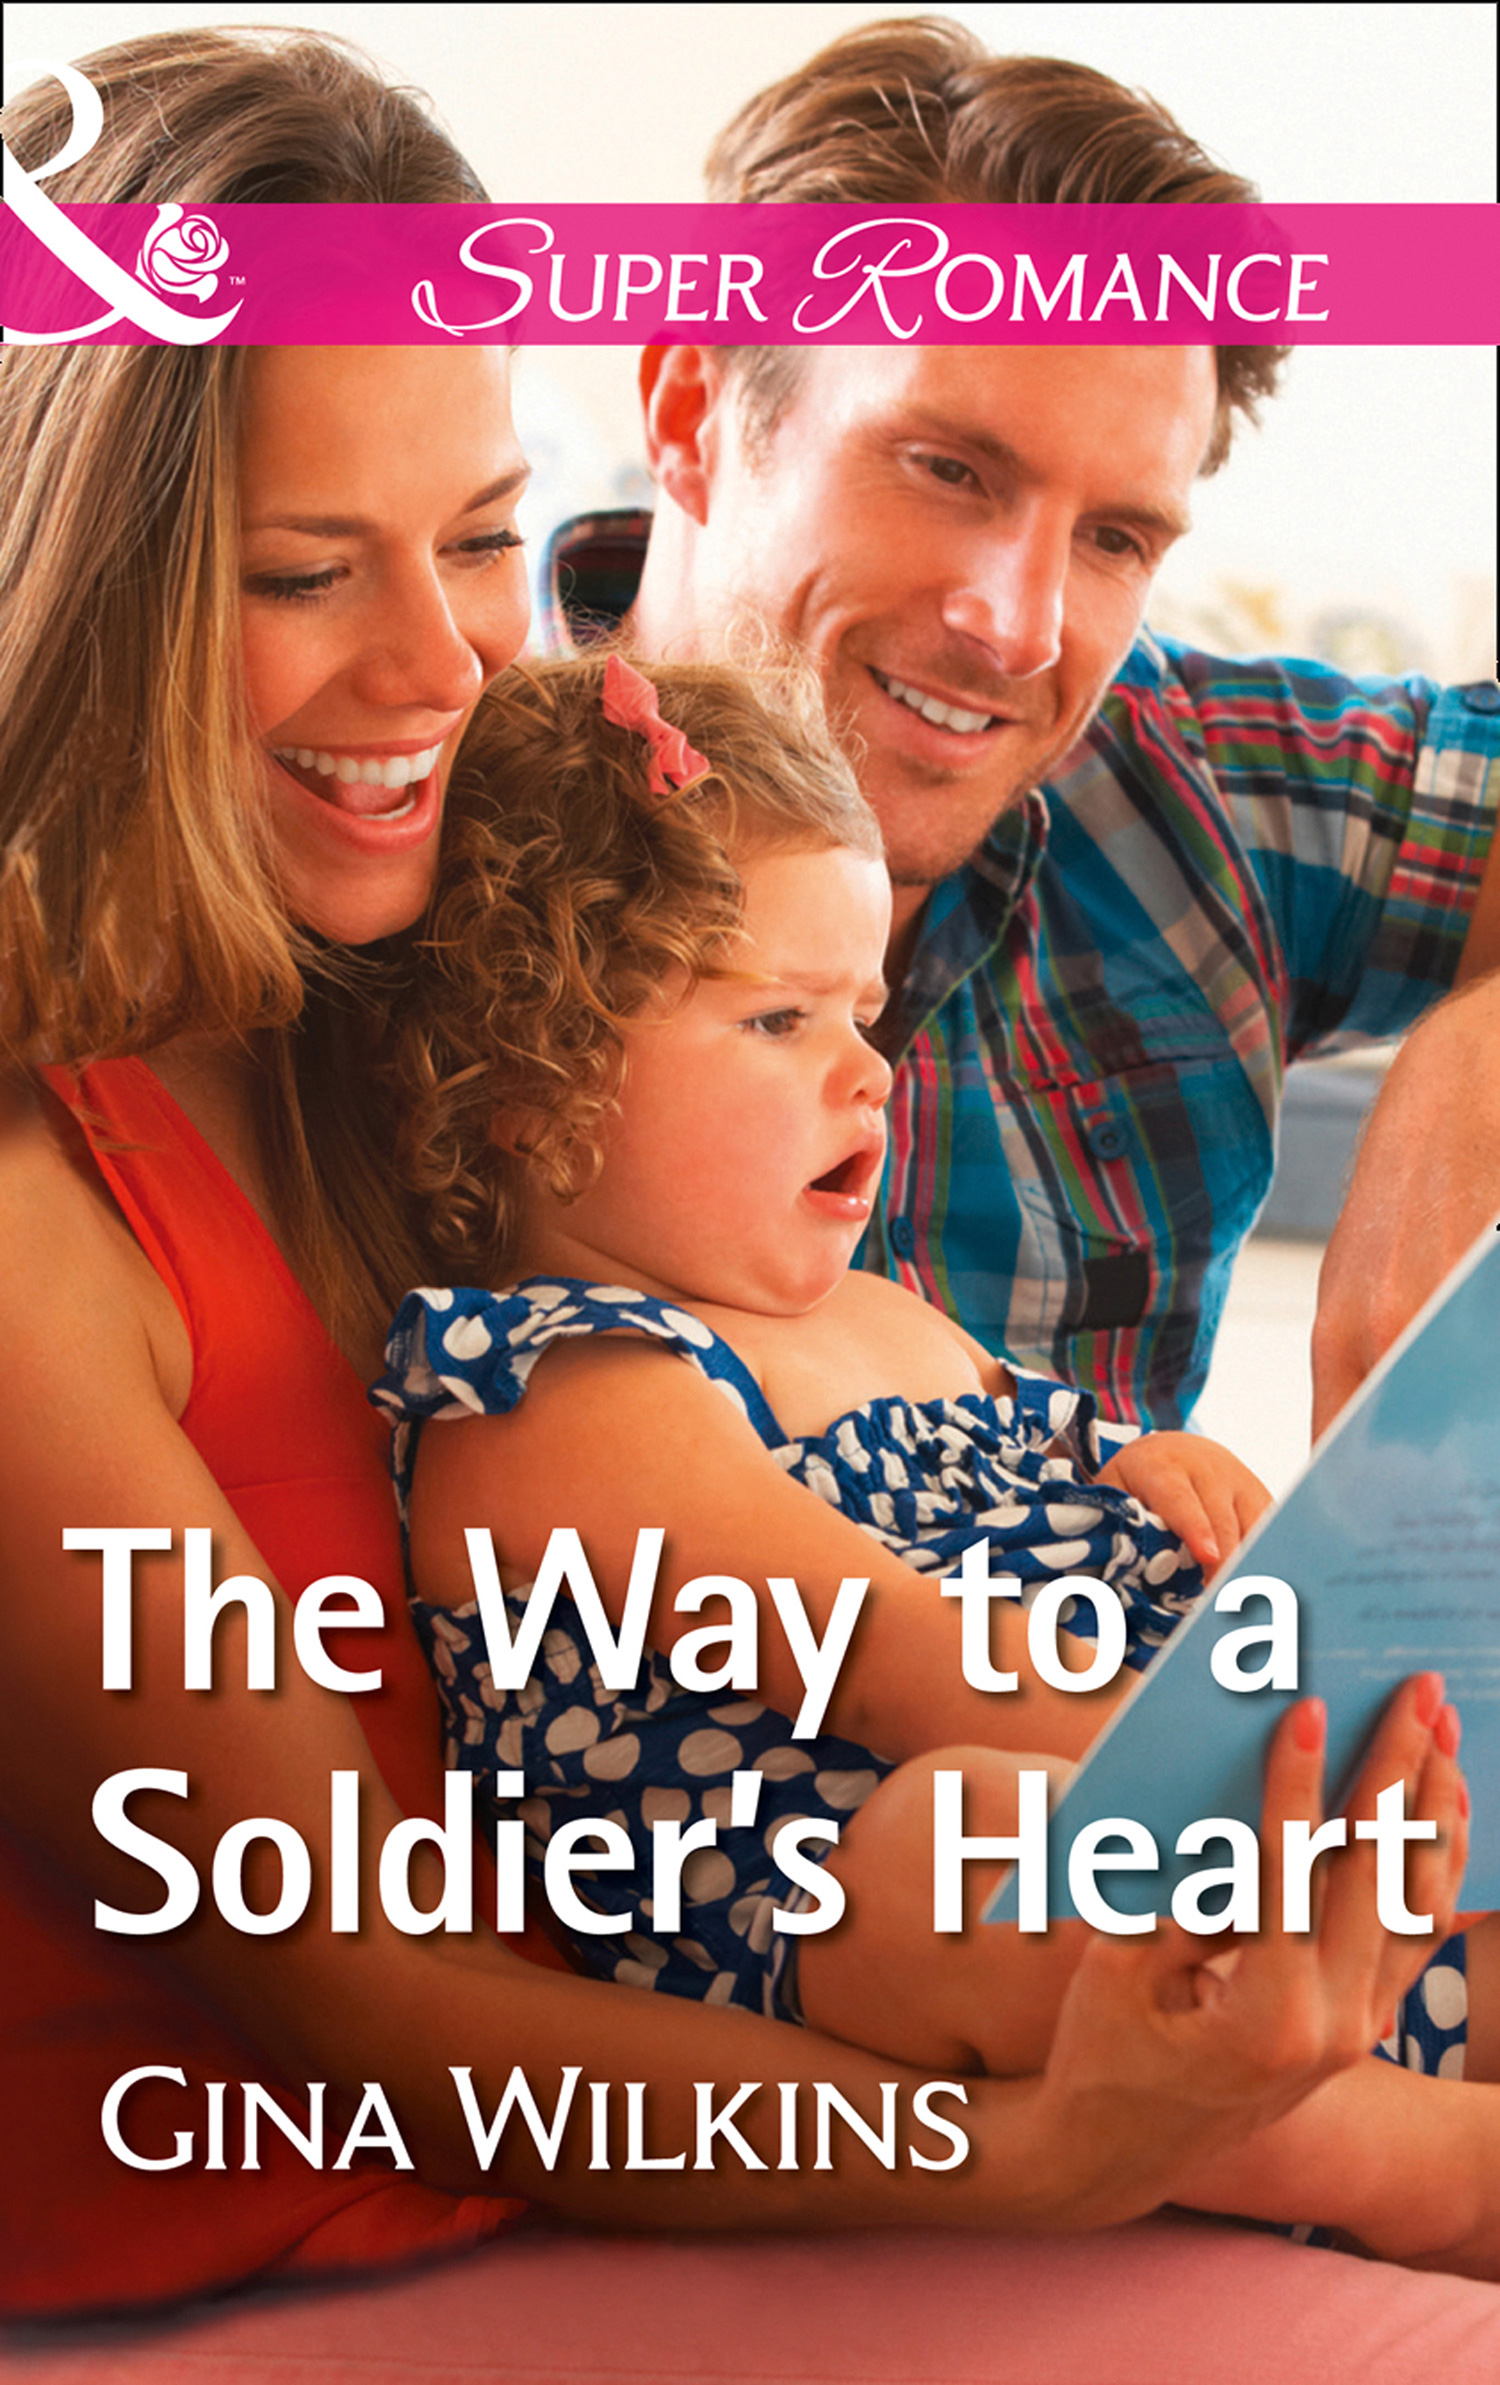 The Way To A Soldier's Heart